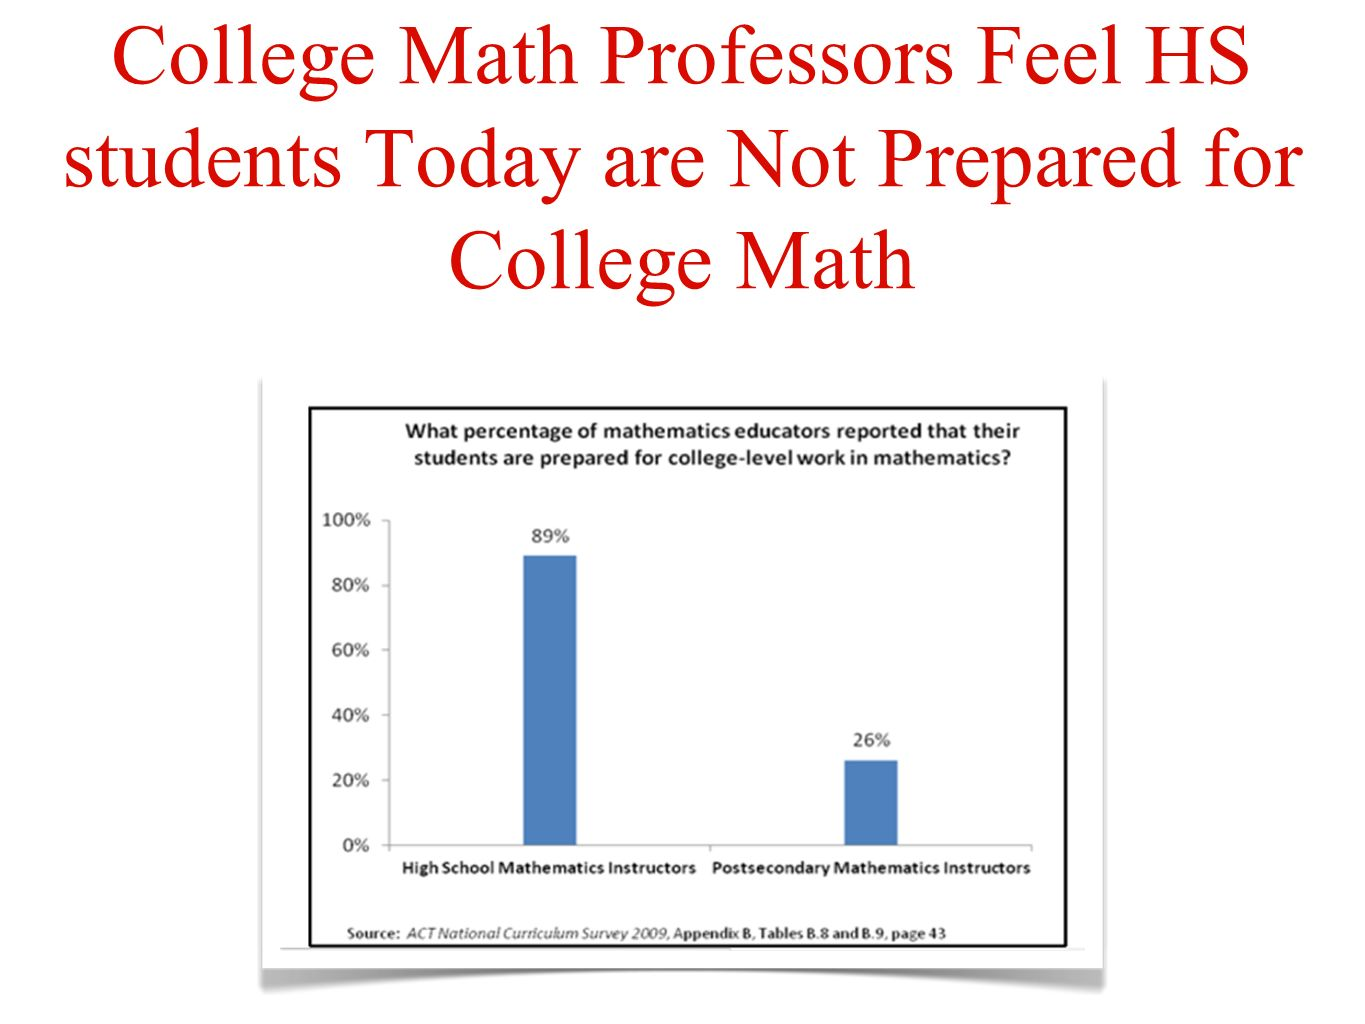 College Math Professors Feel HS students Today are Not Prepared for College Math